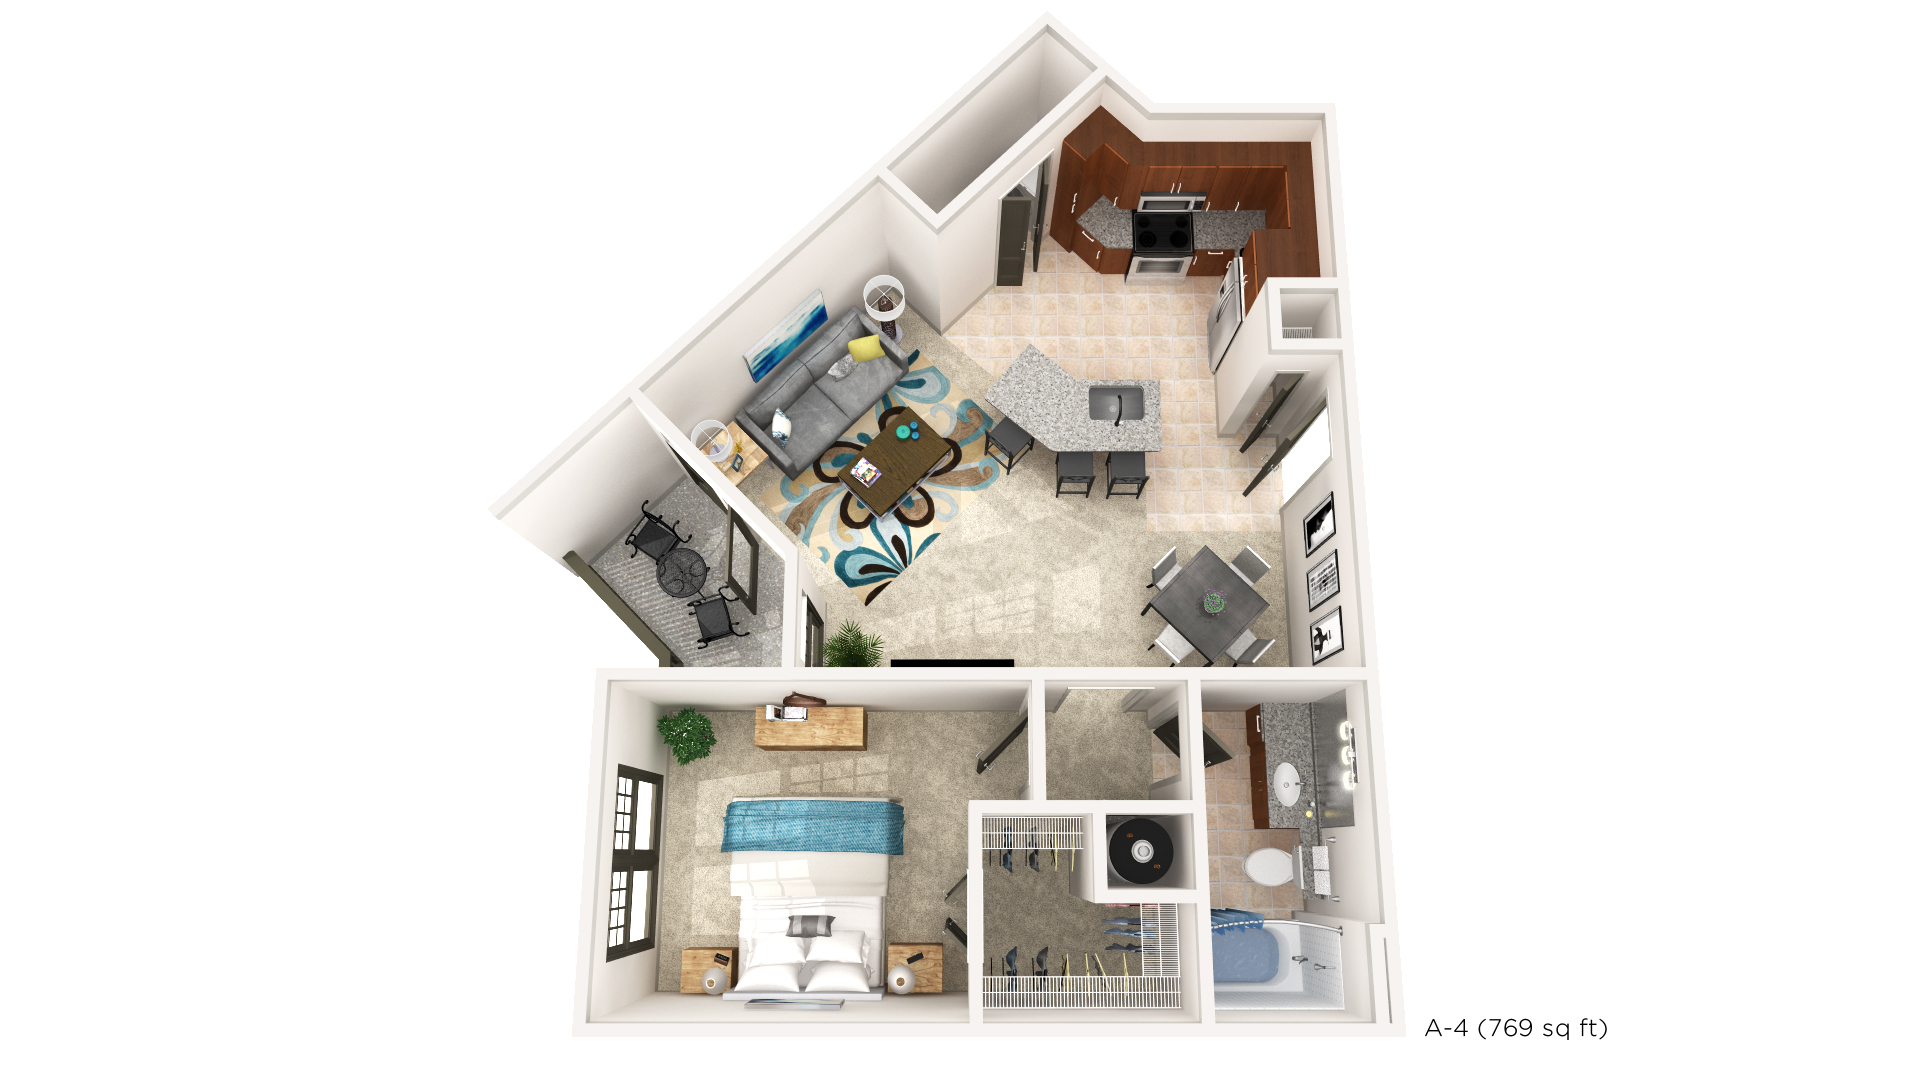 Brookleigh Flats Luxury Apartment Homes - Floorplan - A-4